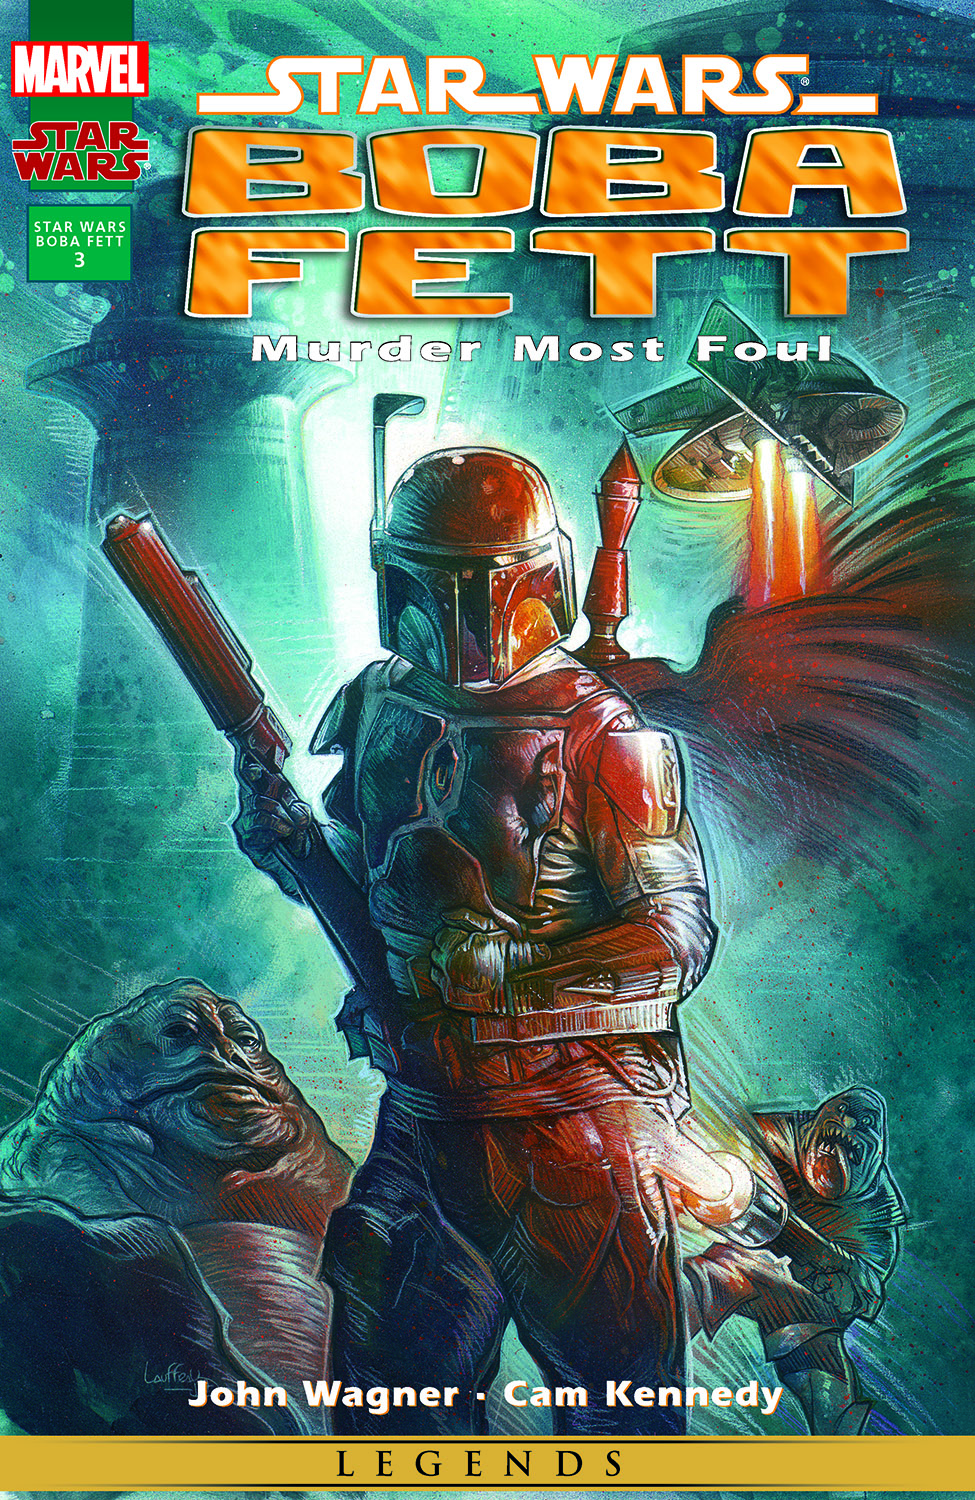 Star Wars: Boba Fett - Murder Most Foul (1997) #1